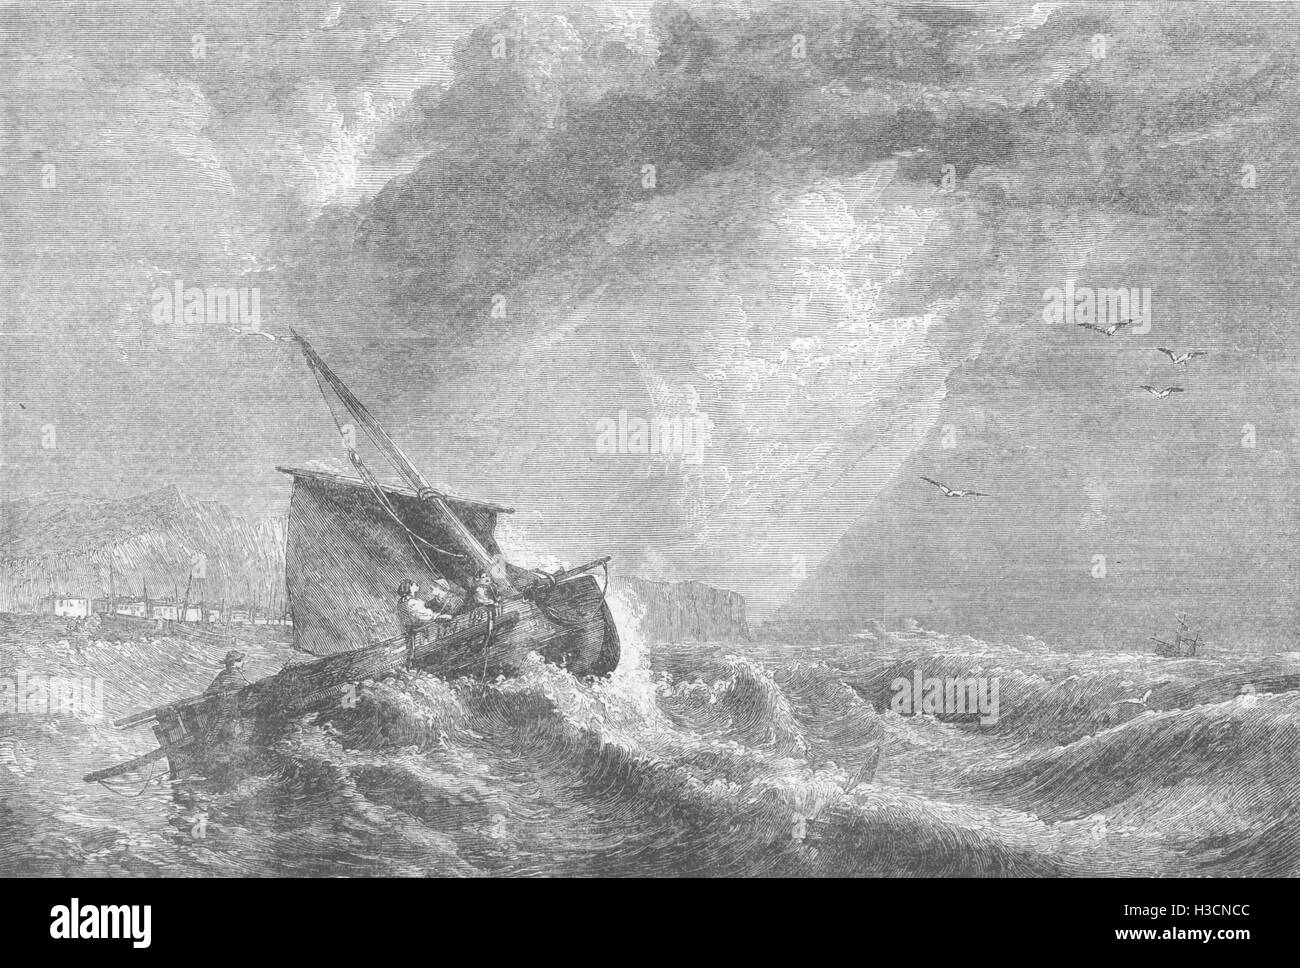 BOATS A Signal of Distress in the Offing. Boat in difficulty 1858. The Illustrated London News - Stock Image